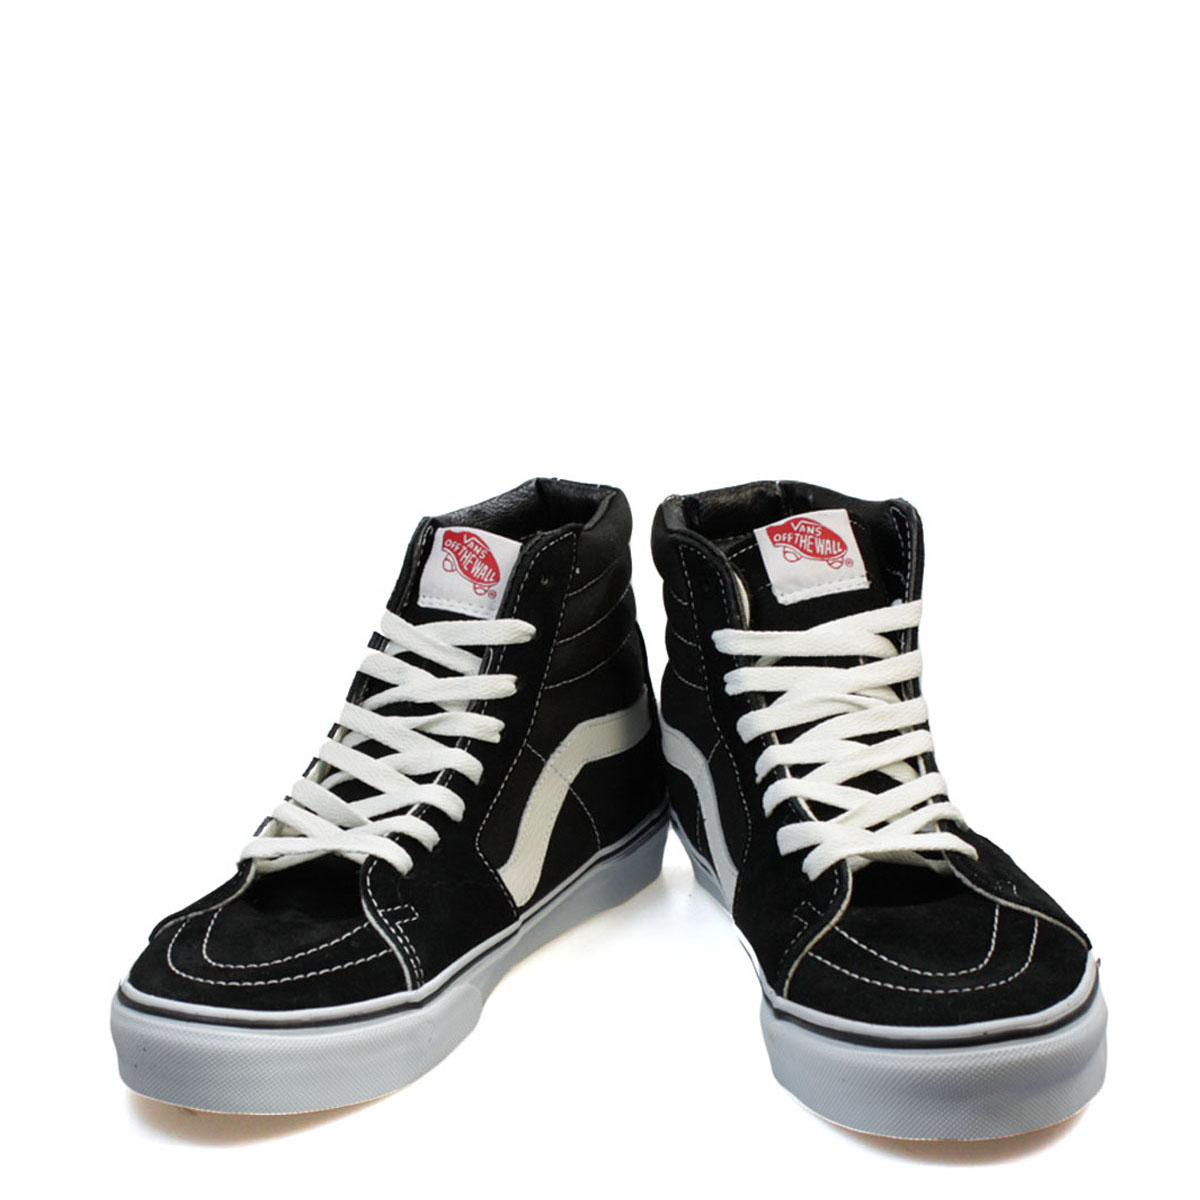 How To Lace Vans Sk Hi Shoes